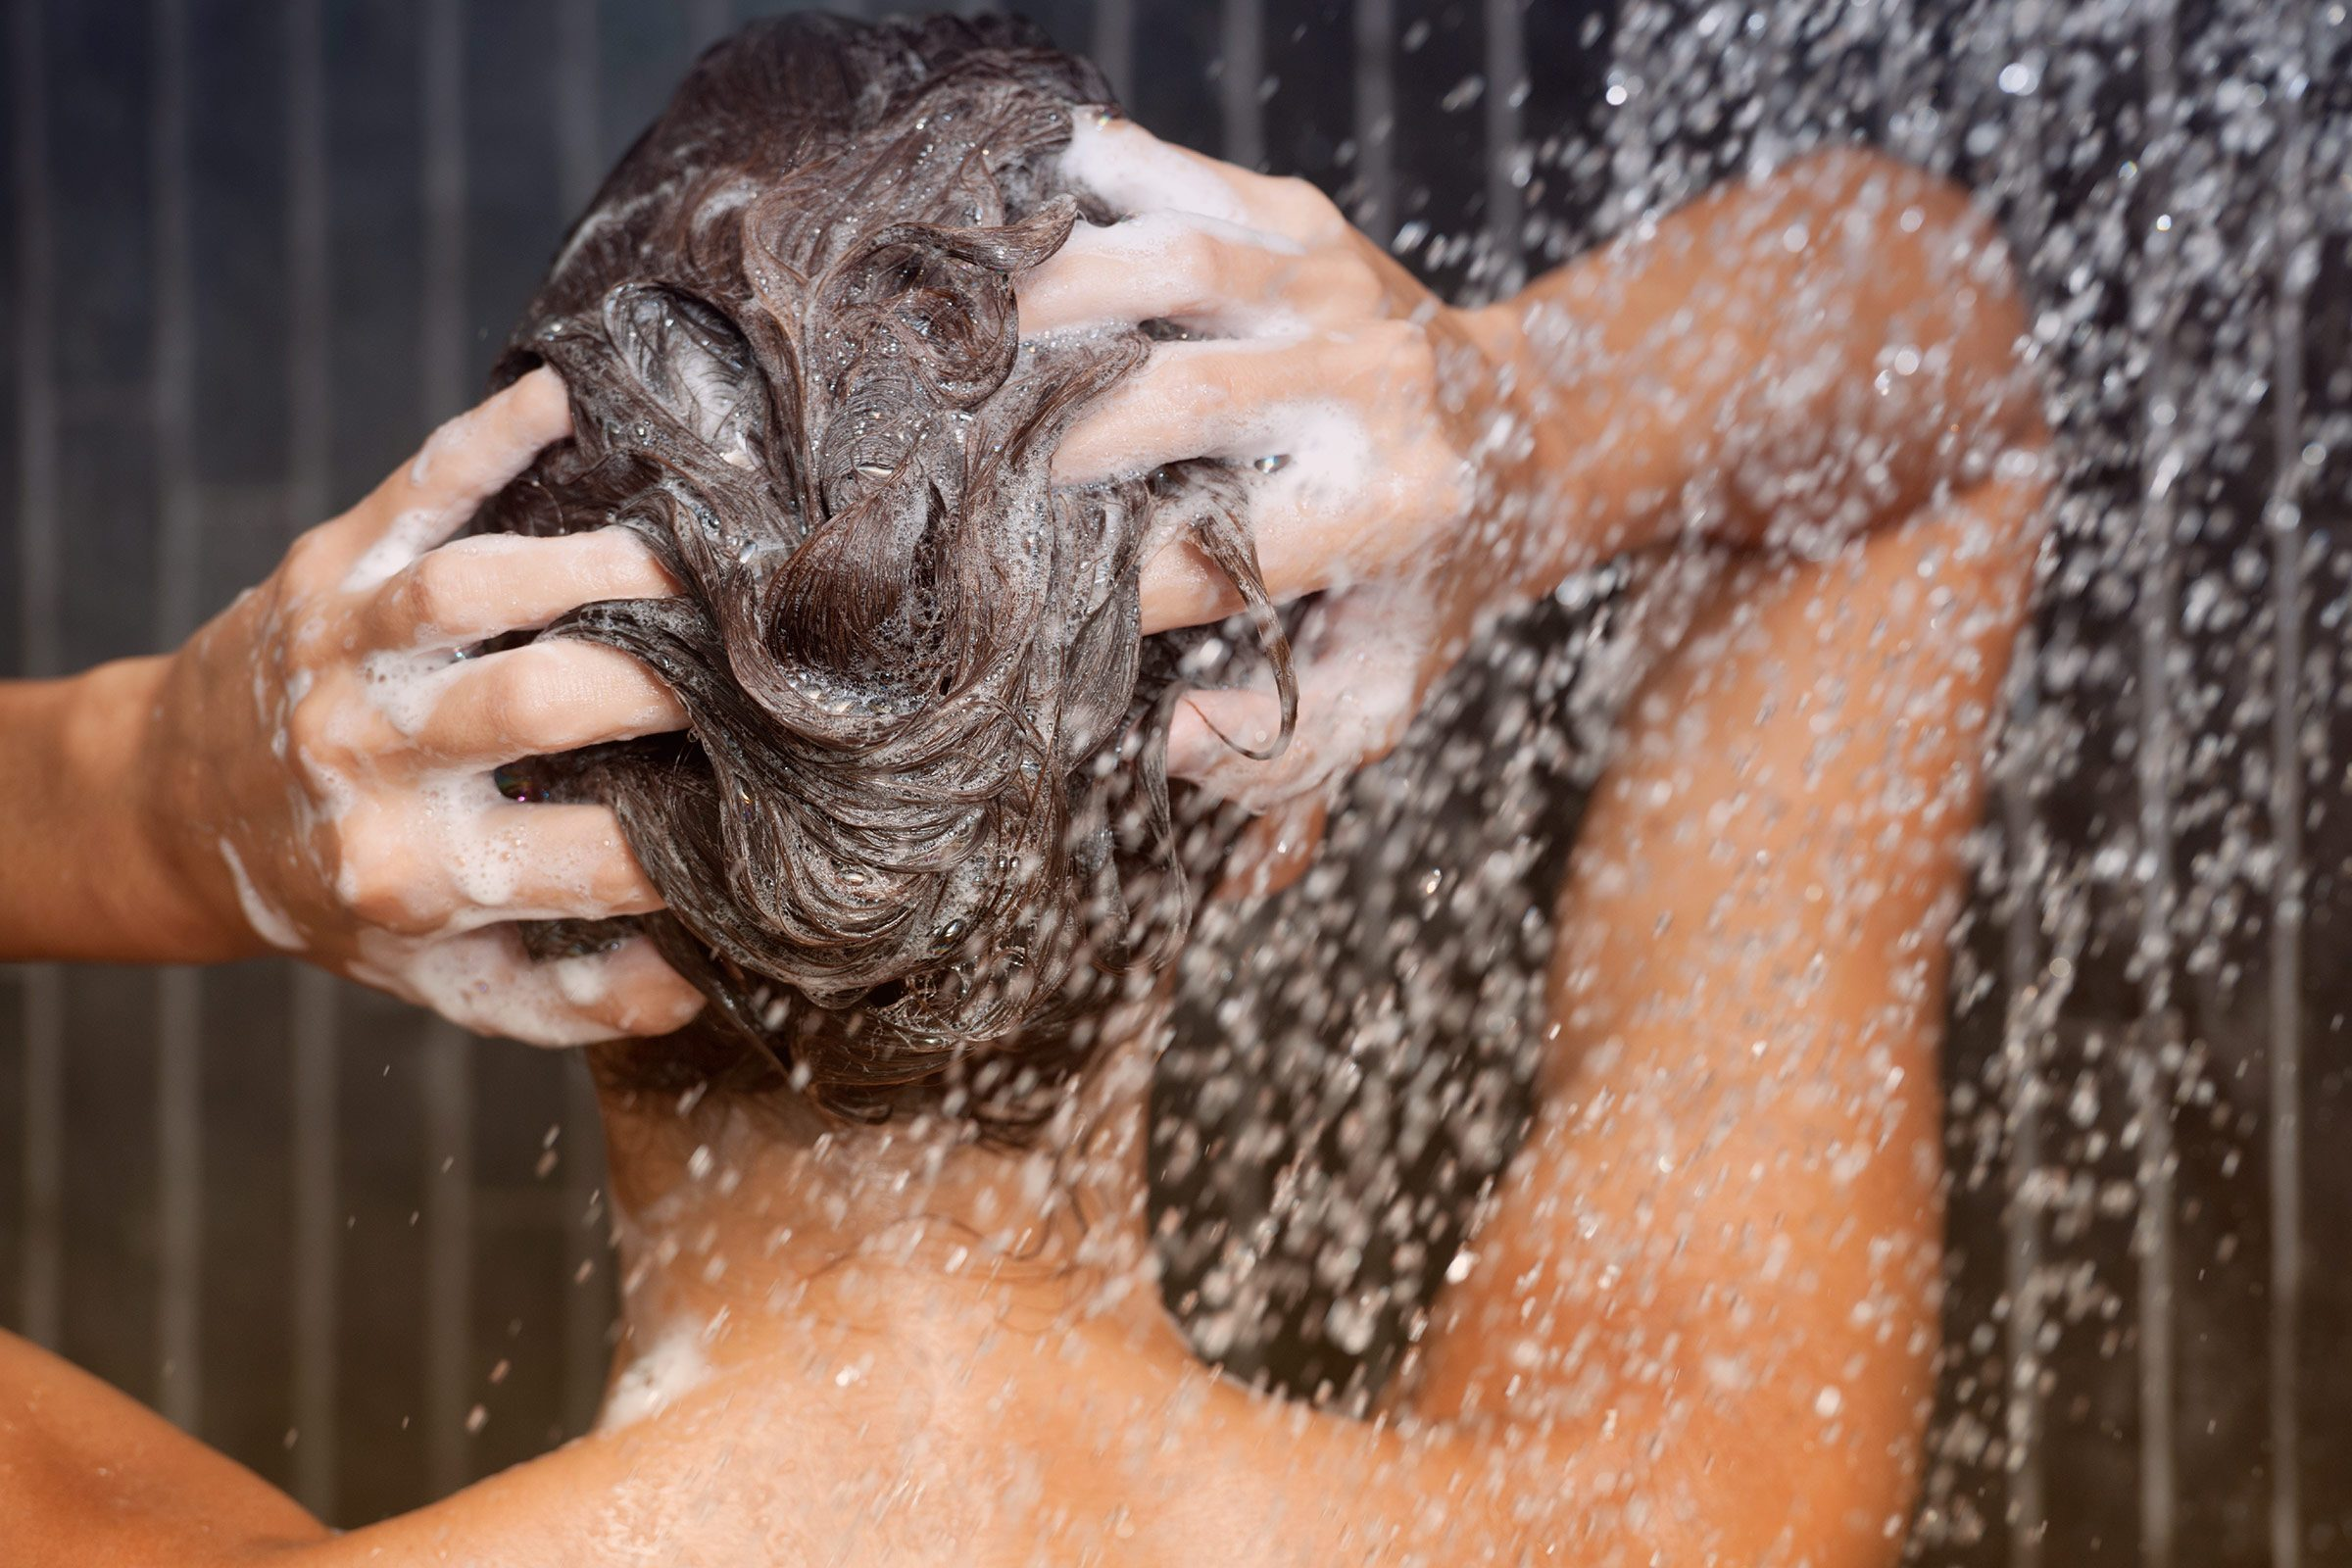 Personal Hygiene What S Harmful What S Helpful Reader